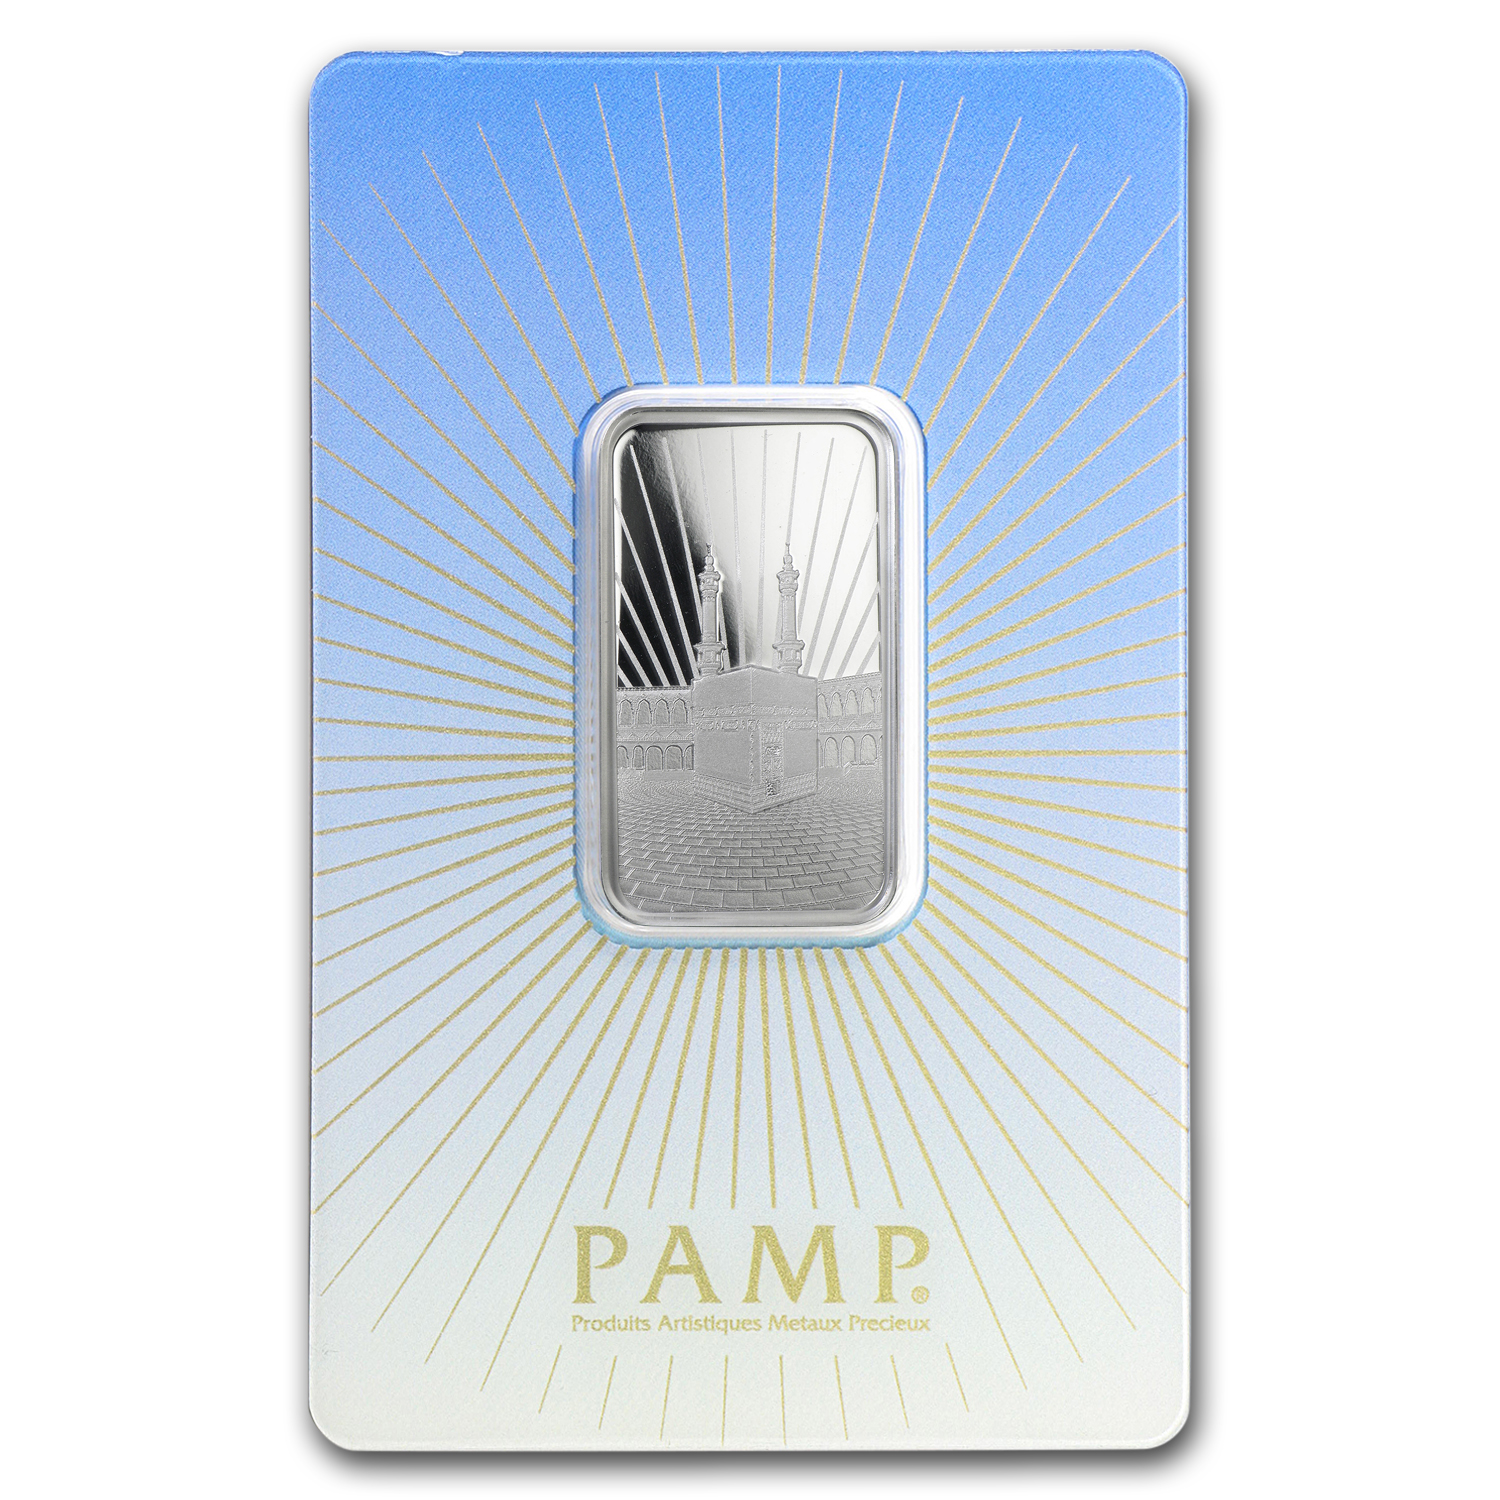 10 G Silver Bar Pamp Suisse Religious Series Ka Bah